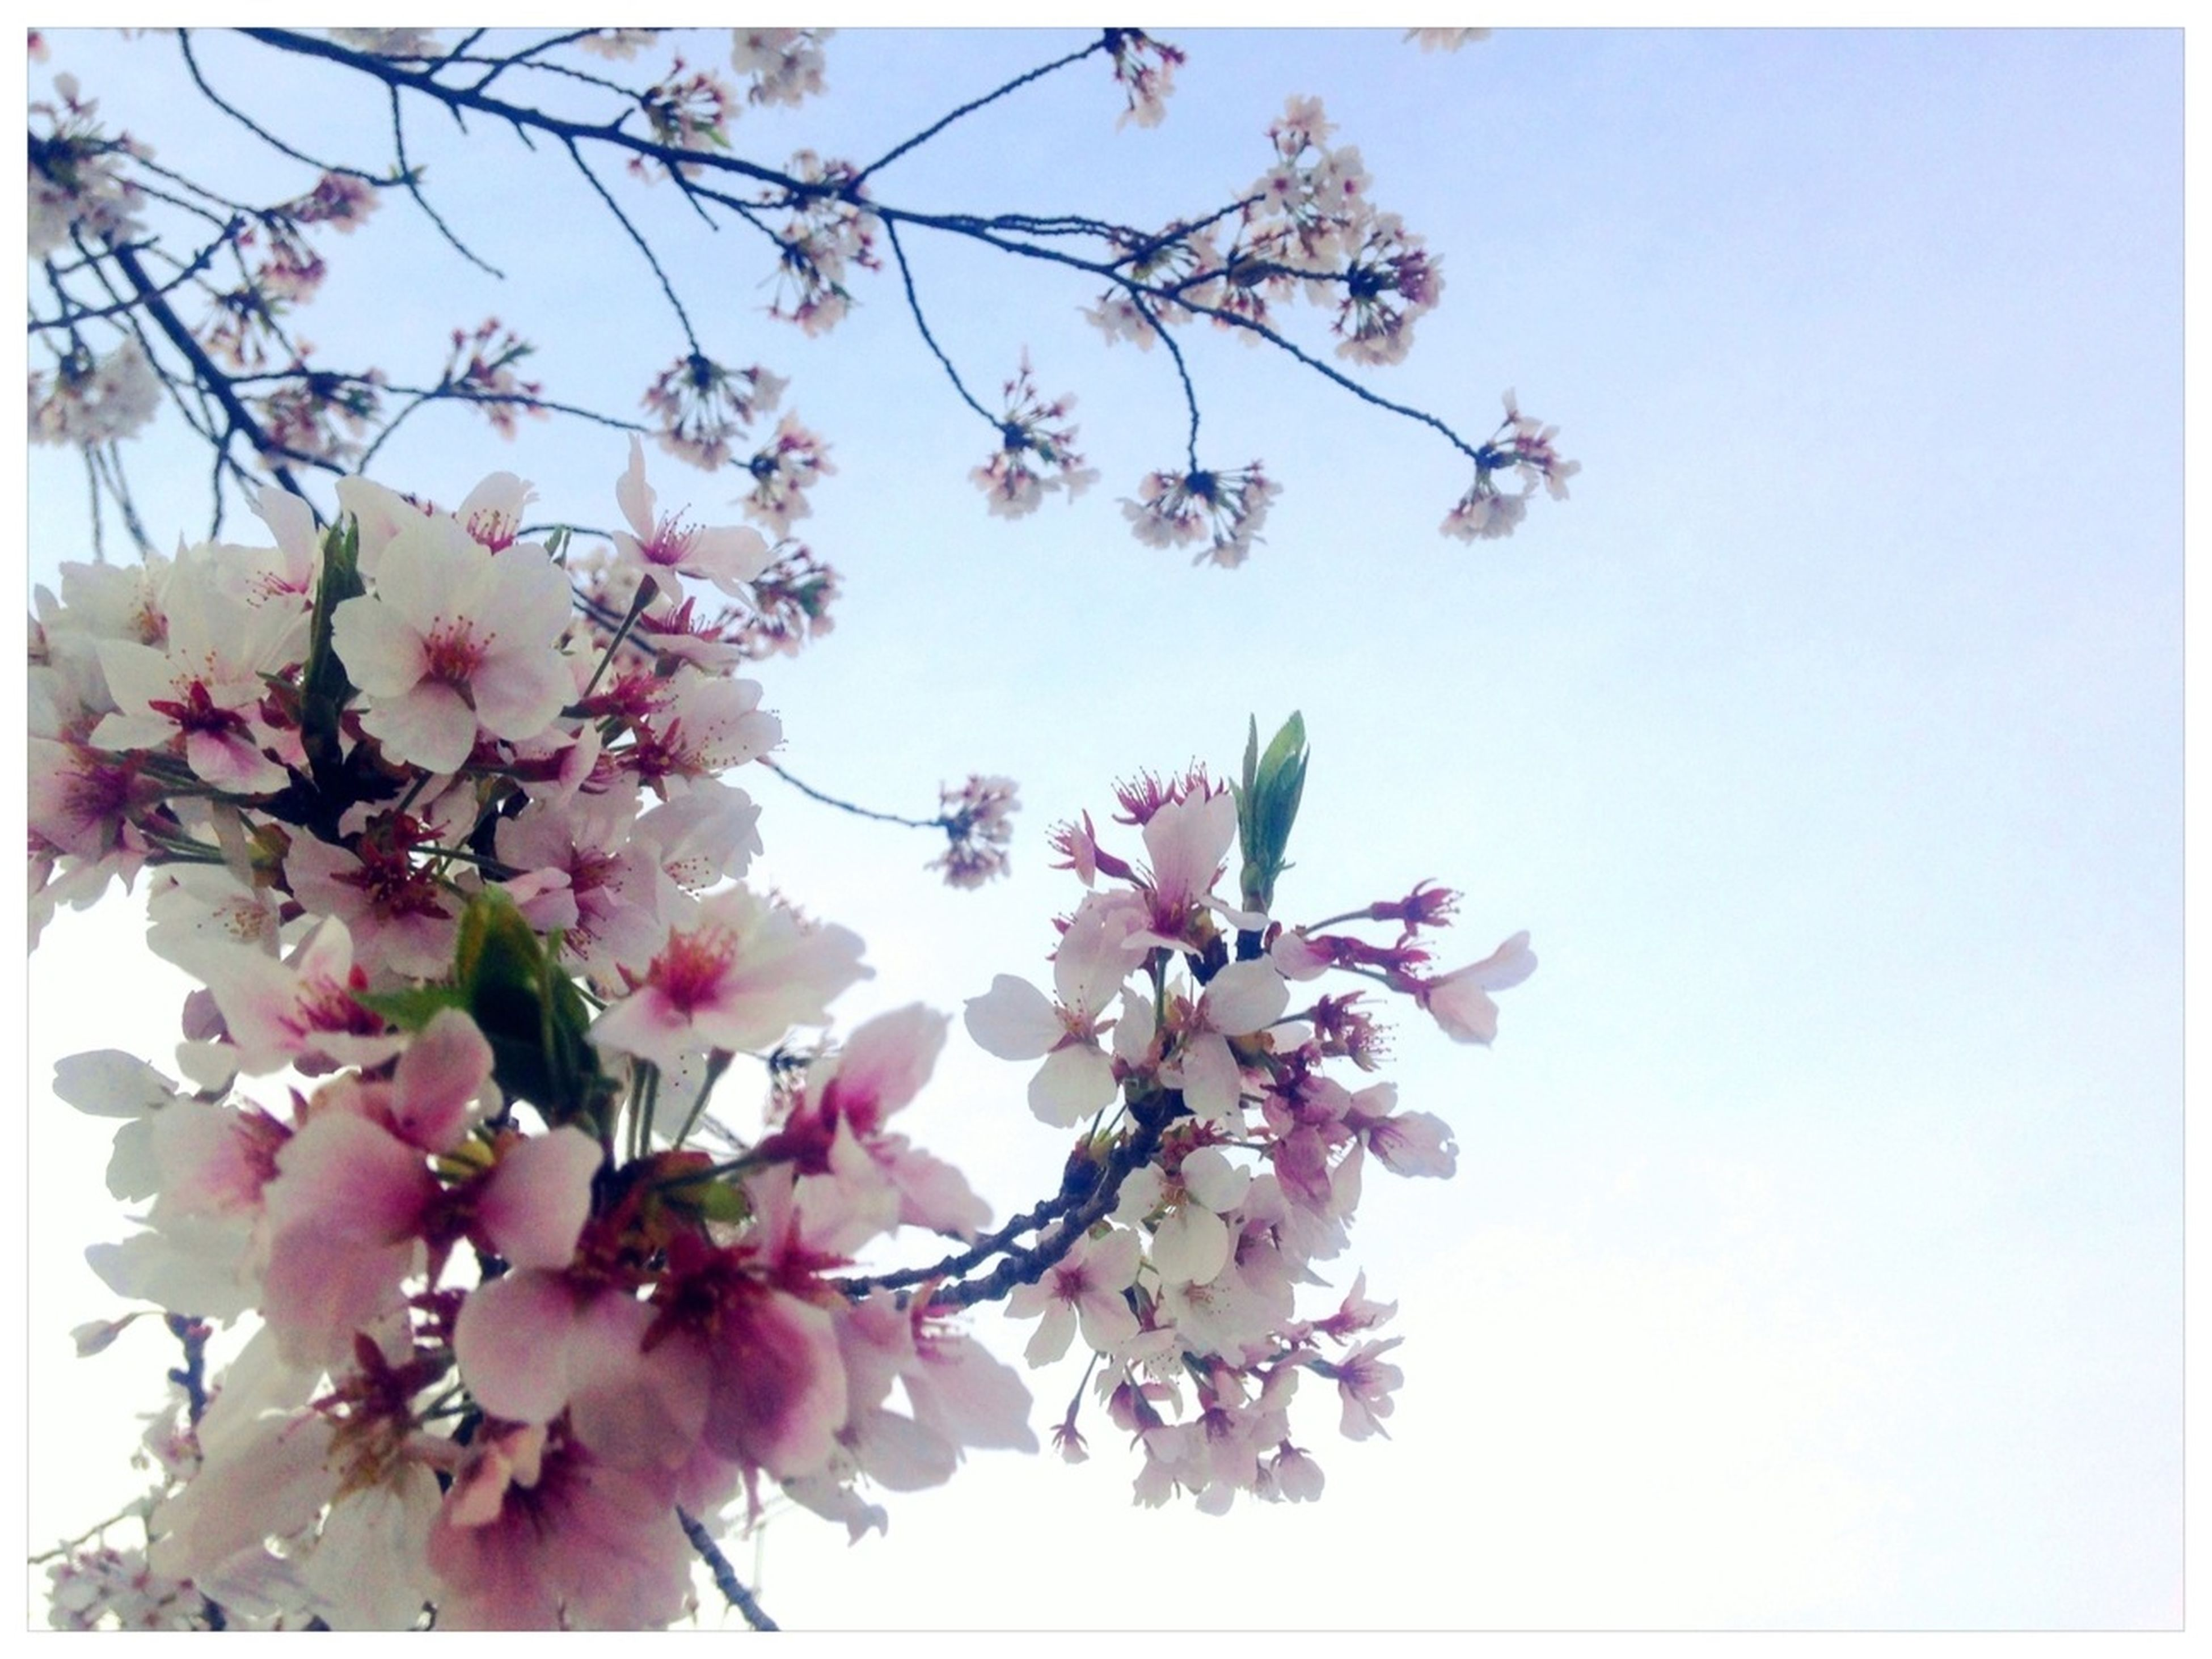 flower, freshness, branch, low angle view, growth, fragility, tree, blossom, beauty in nature, clear sky, cherry blossom, nature, cherry tree, pink color, in bloom, springtime, petal, blooming, fruit tree, twig